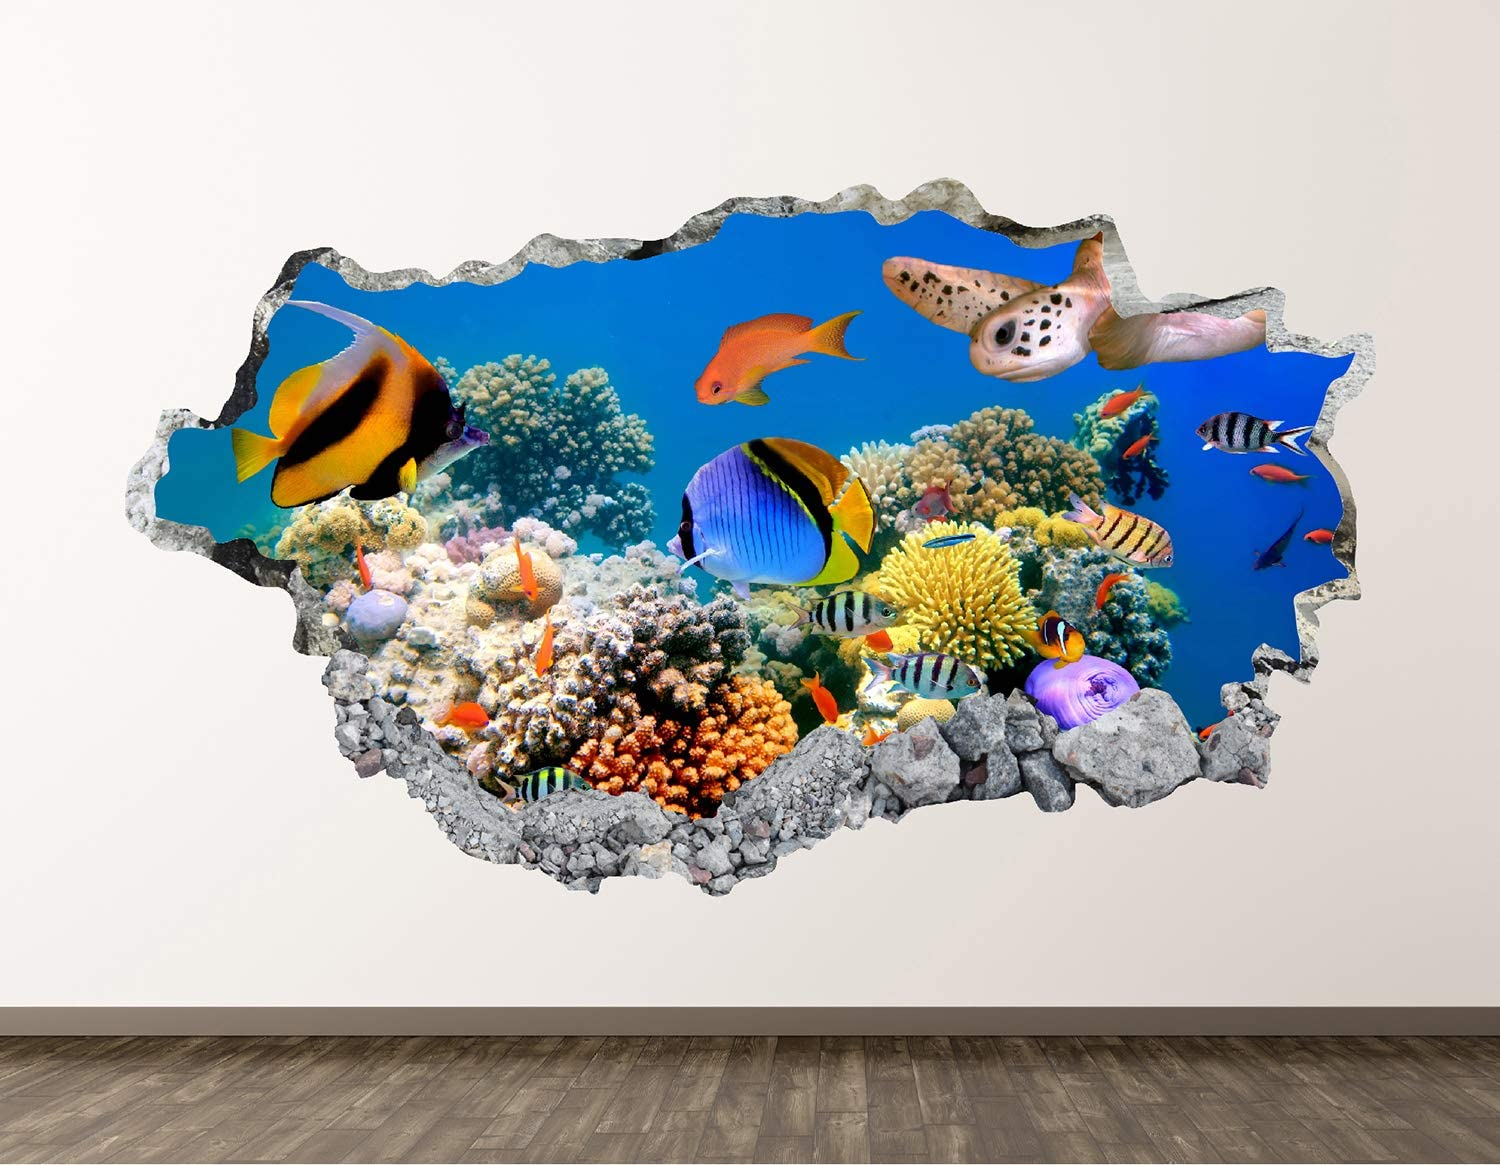 West Mountain Aquarium Wall Decal Art Decor 3d Smashed Ocean Living Room Sticker Mural Home Gift Bl08 50 W X 30 H Home Kitchen